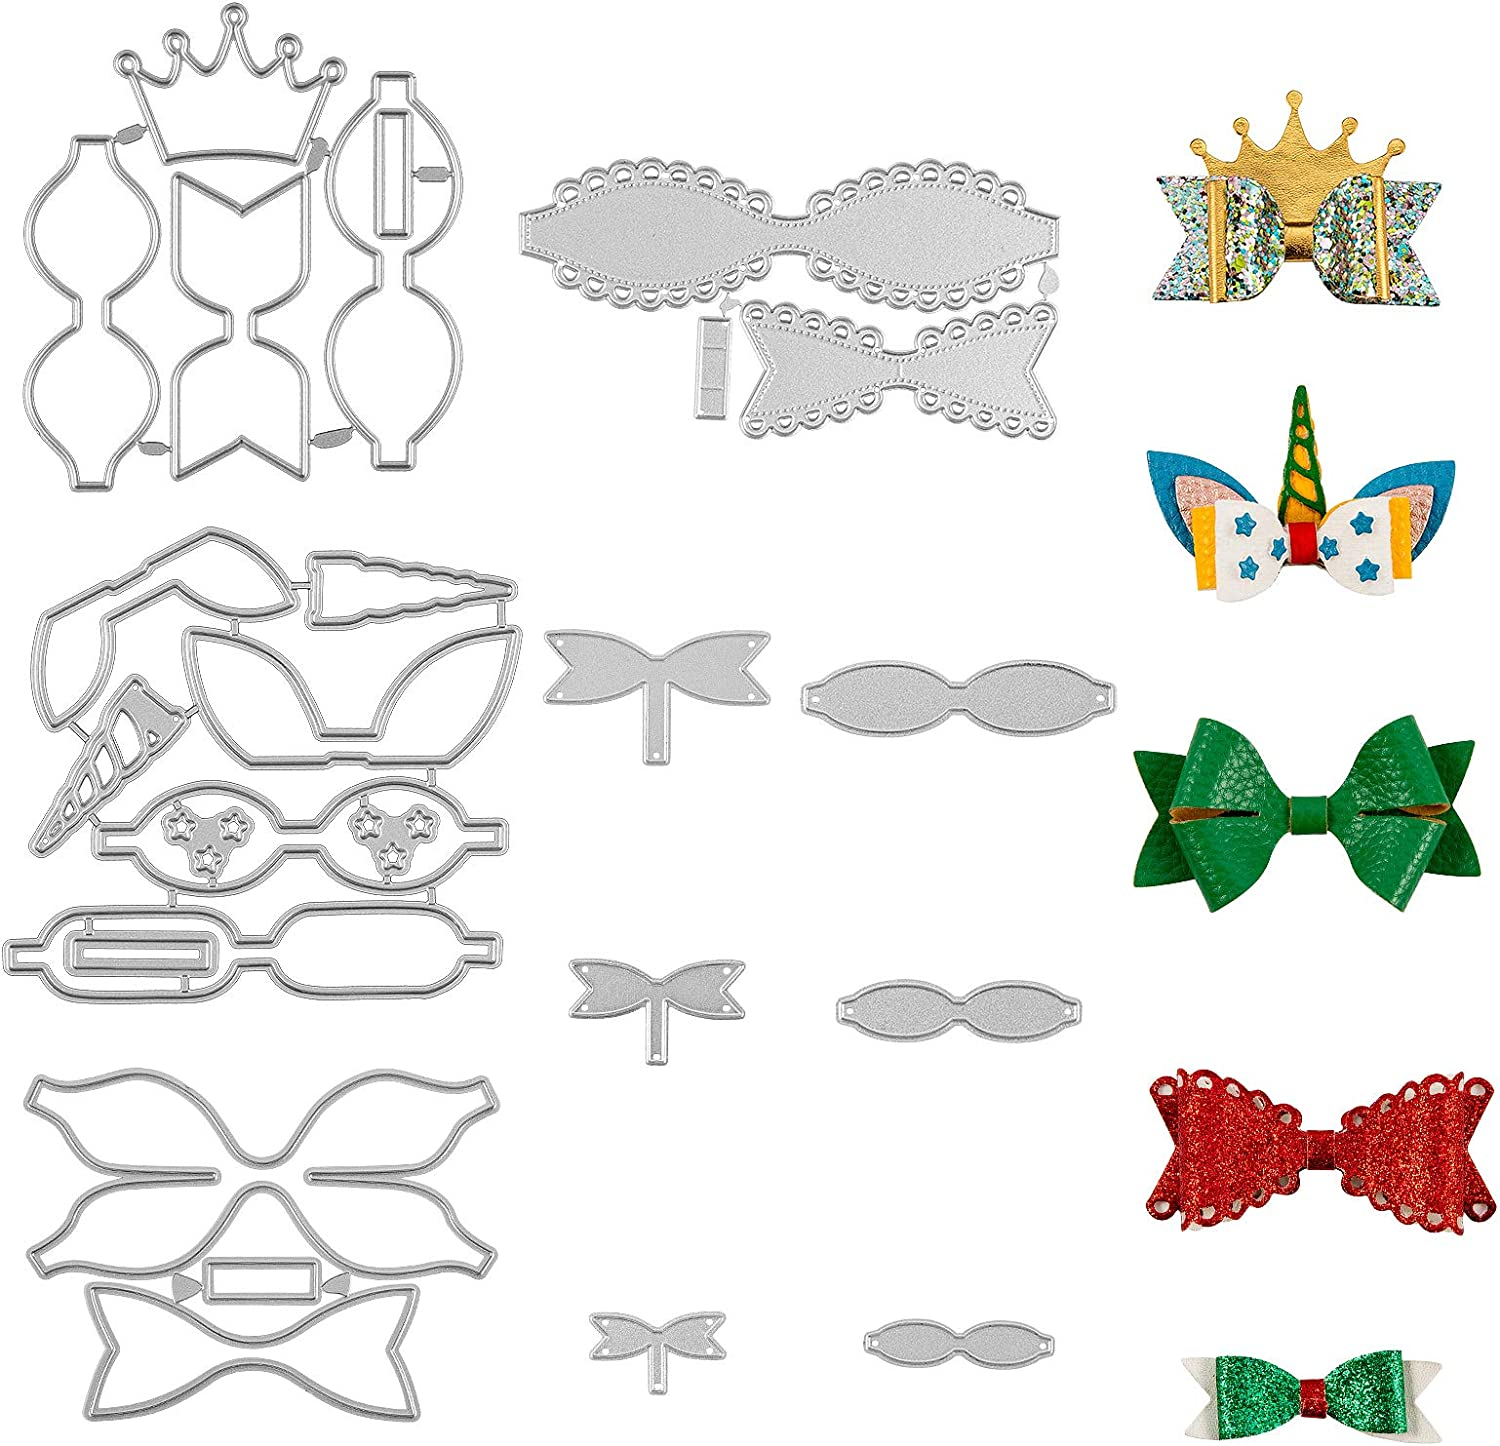 Amazon Com 7 Set Bow Cutting Dies Unicorn Bow Die Cuts Crown Bow Templates For Making Hair Bows Scrapbooking Diy Crafts